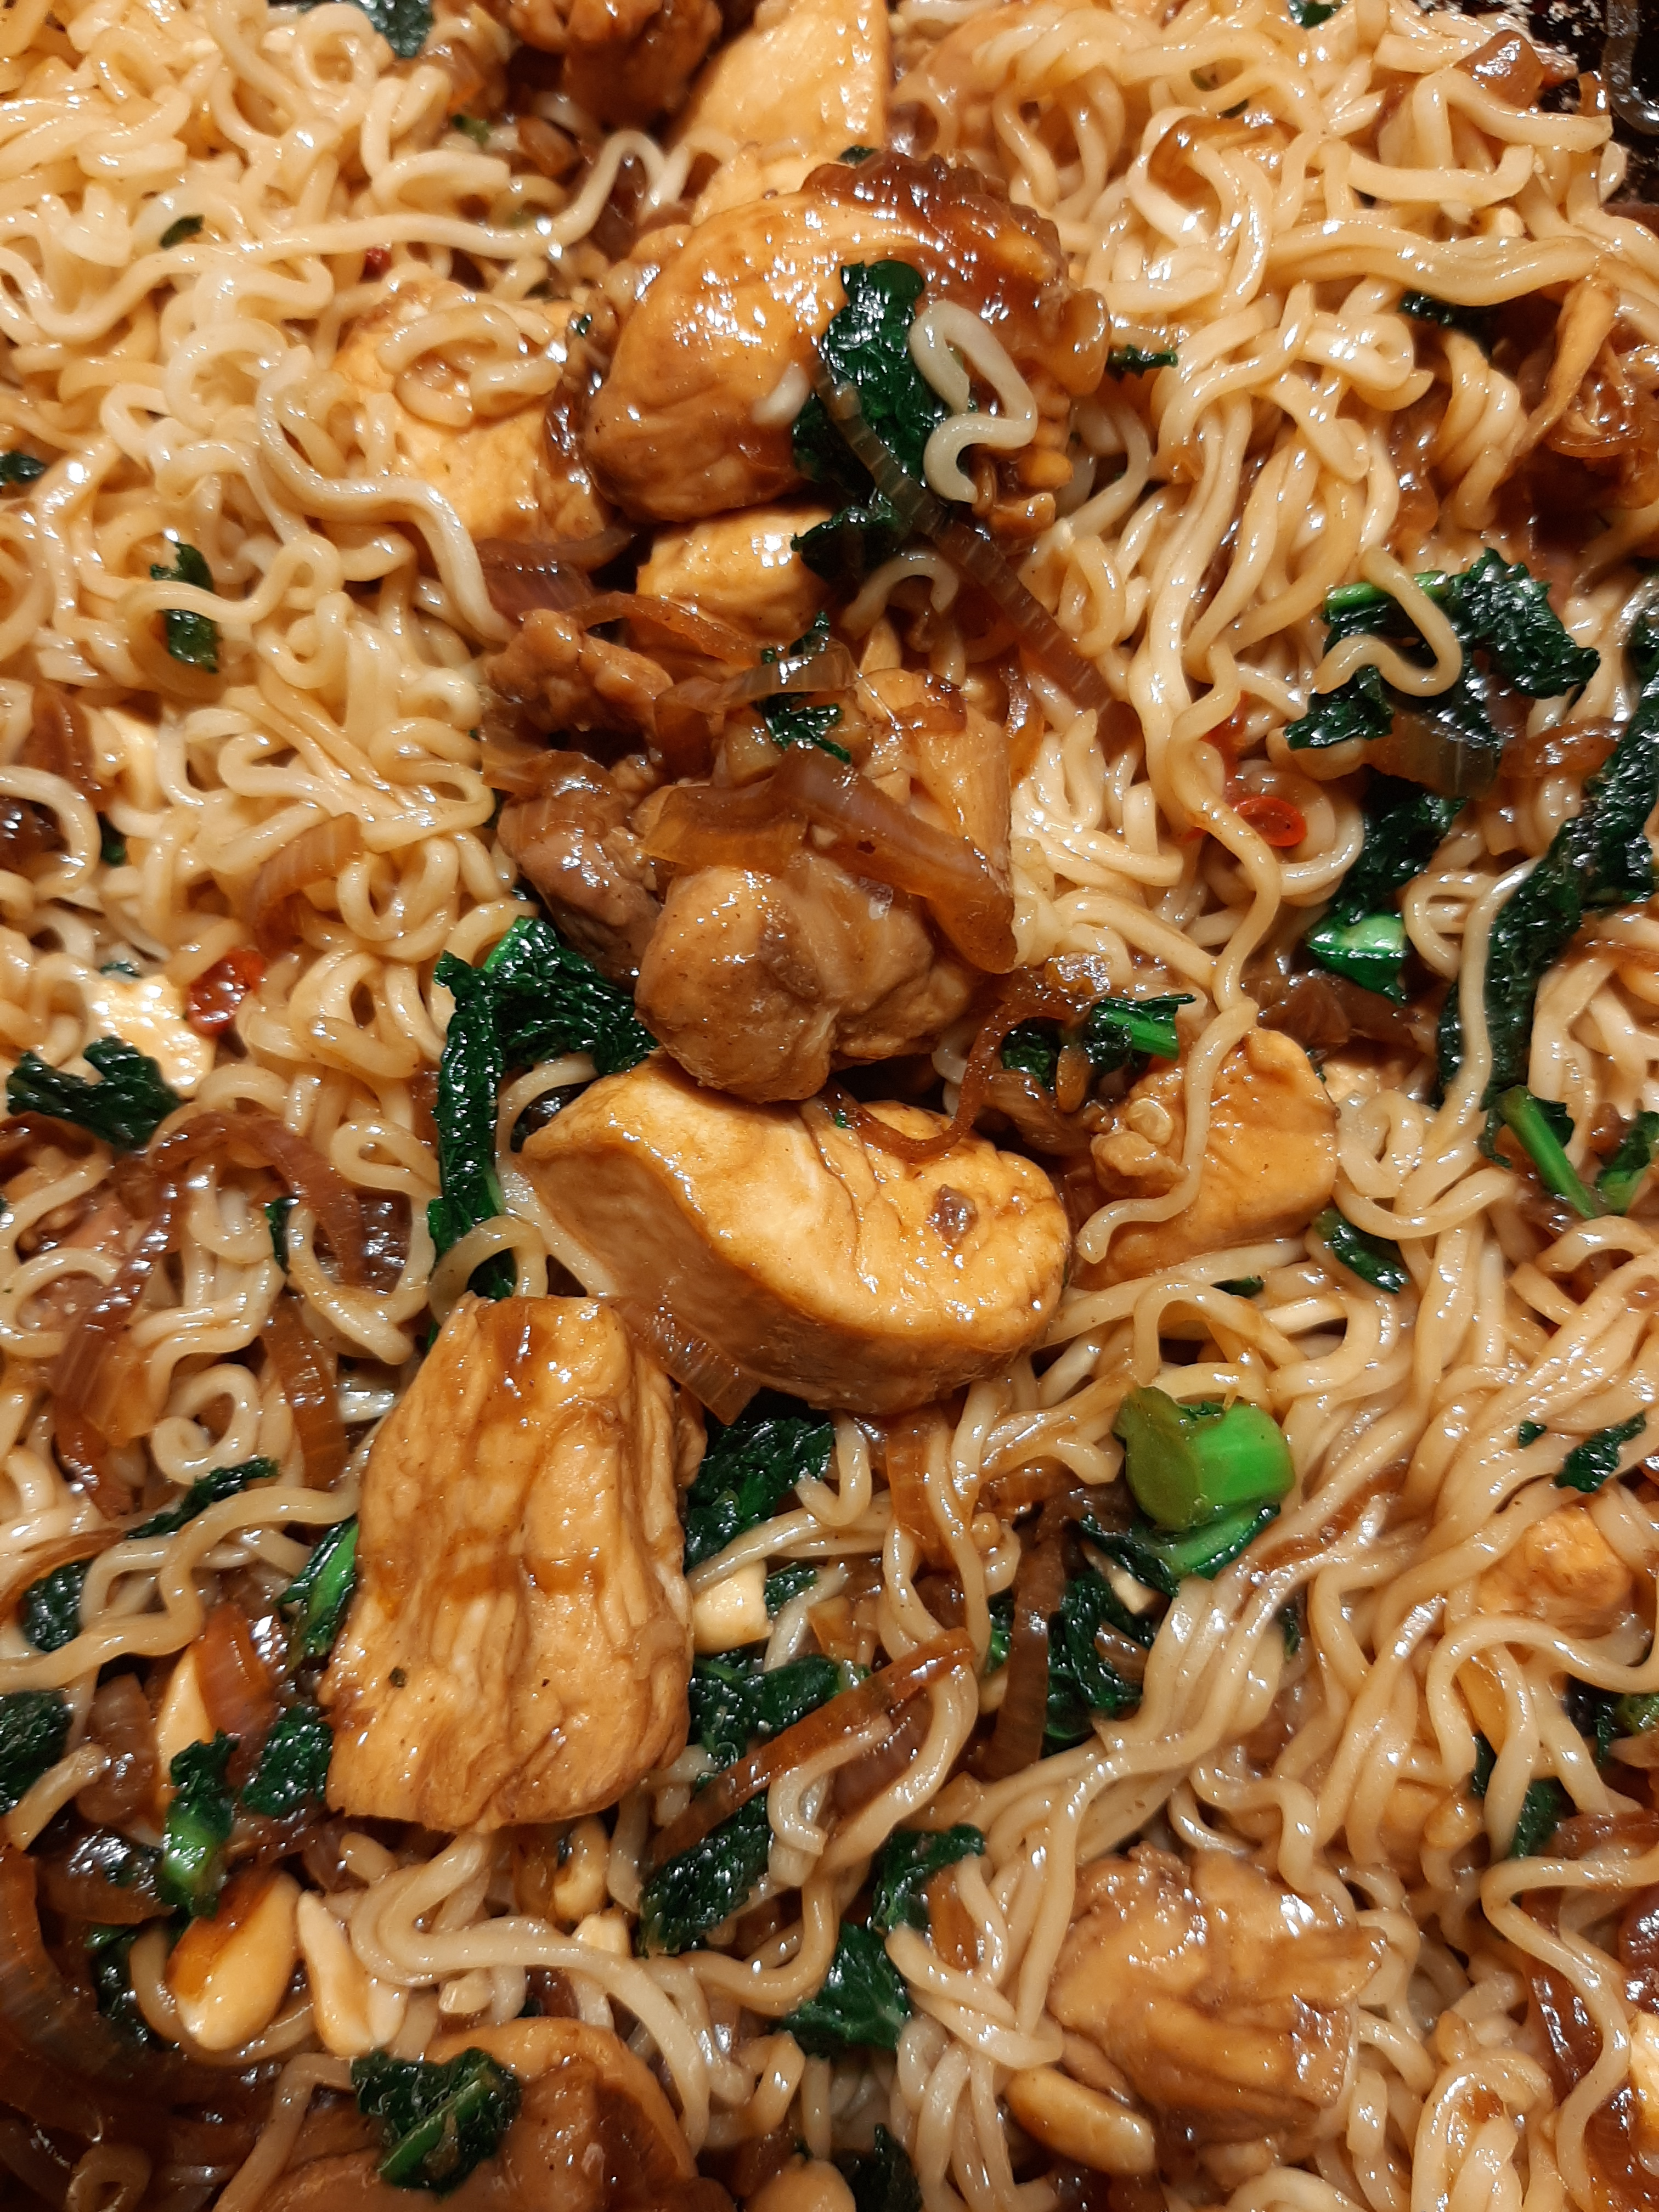 Lara Lee's spicy soy pork and peanut instant noodles from Guardian Feast by me, Jackie Kaines